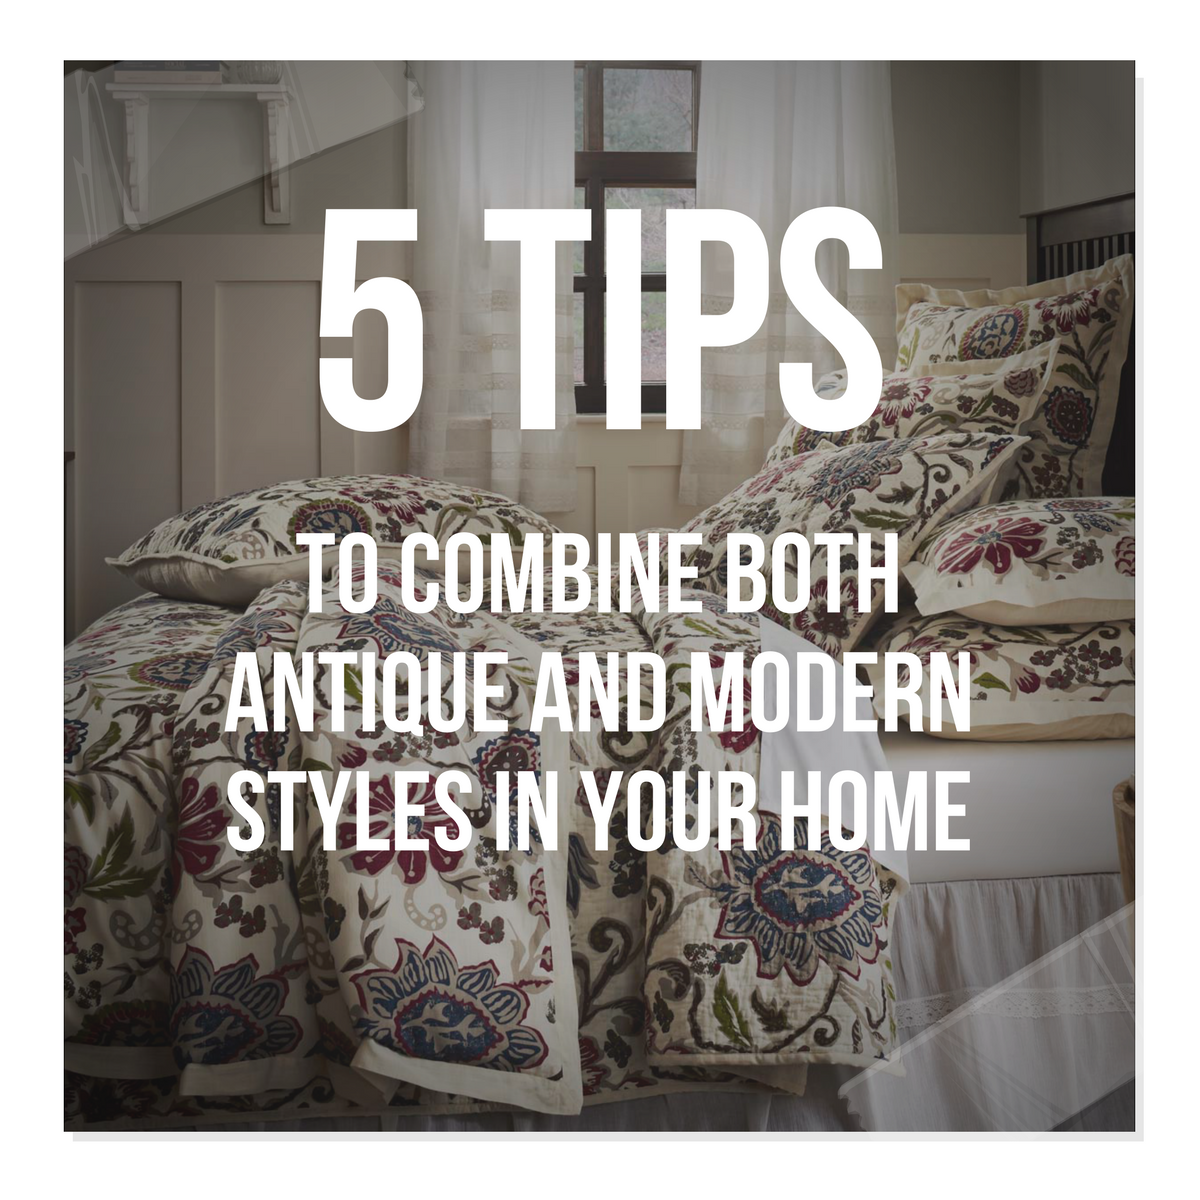 5 Tips To Combine Both Antique And Modern Styles In Your Home